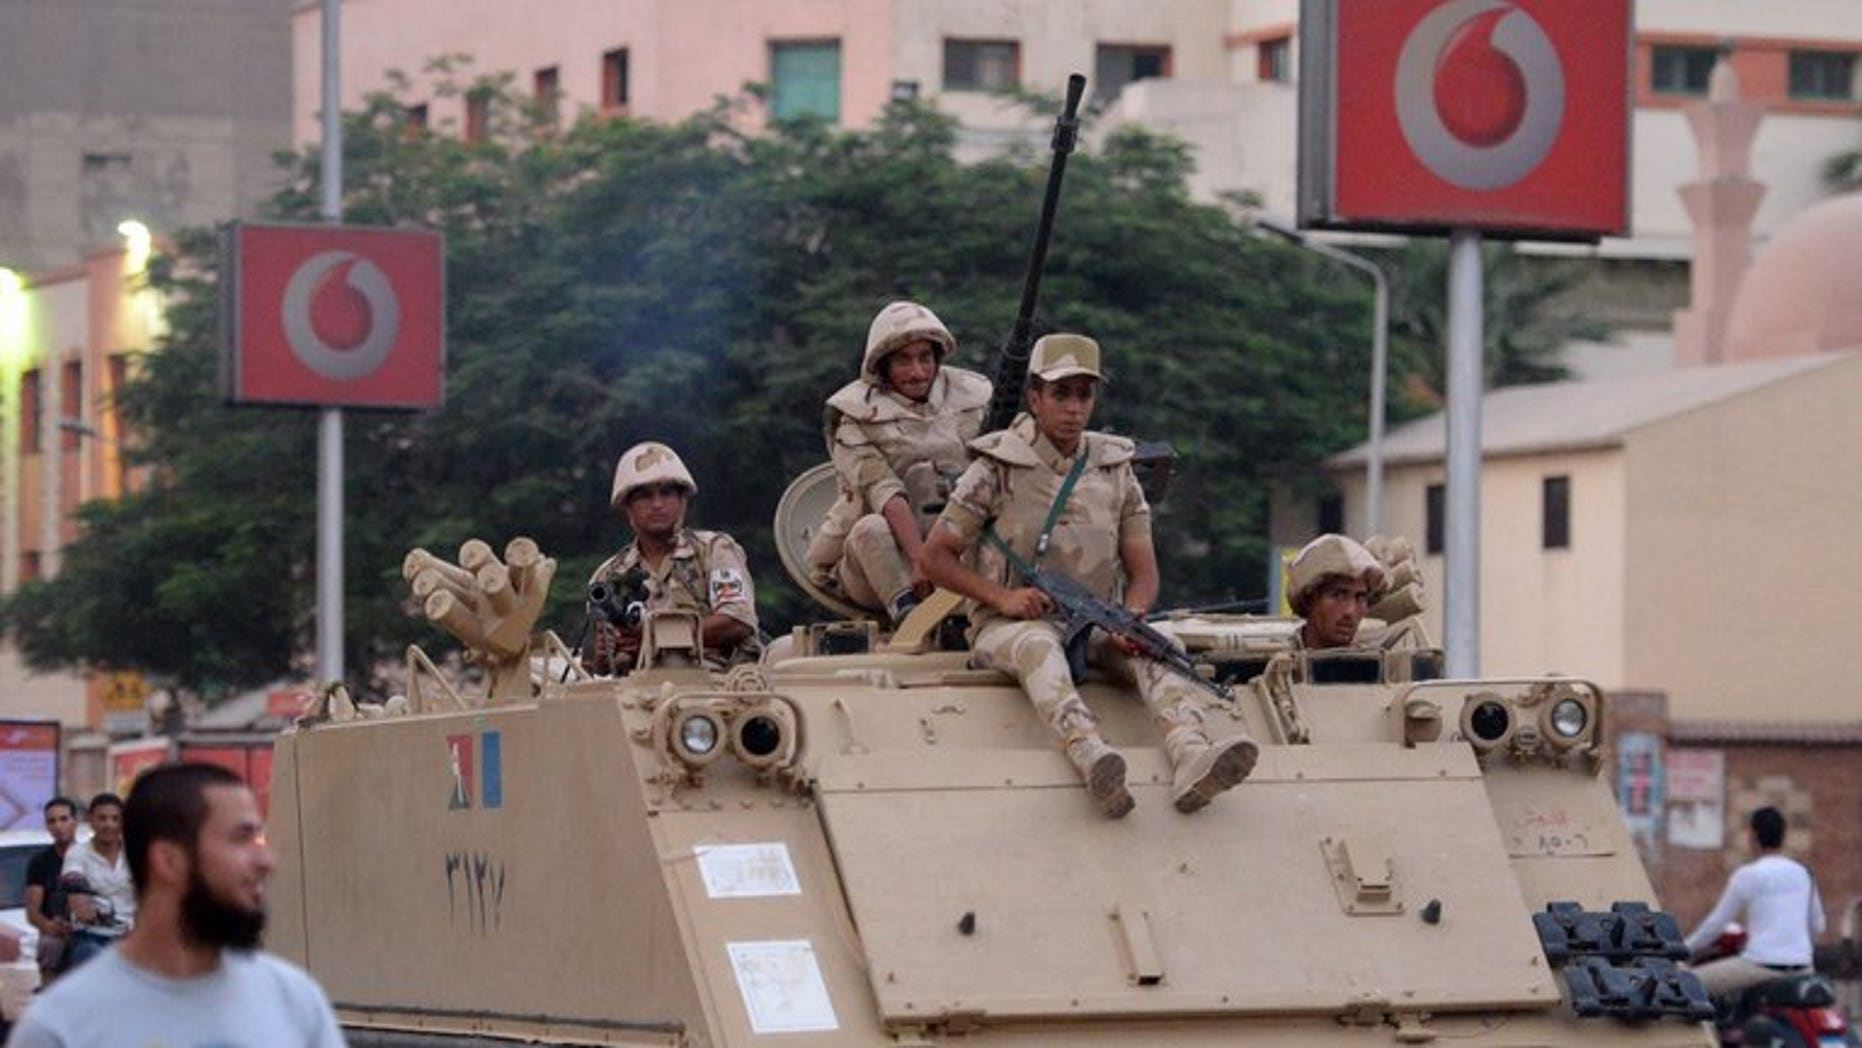 Egyptian army soldiers sit on top of an armoured personnel carrier in a Cairo street on July 3, 2013. Israel has urged Washington not to suspend its annual $1.3 billion in aid to Cairo in the wake of the ouster of Egyptian president Mohamed Morsi by the military, press reports said.